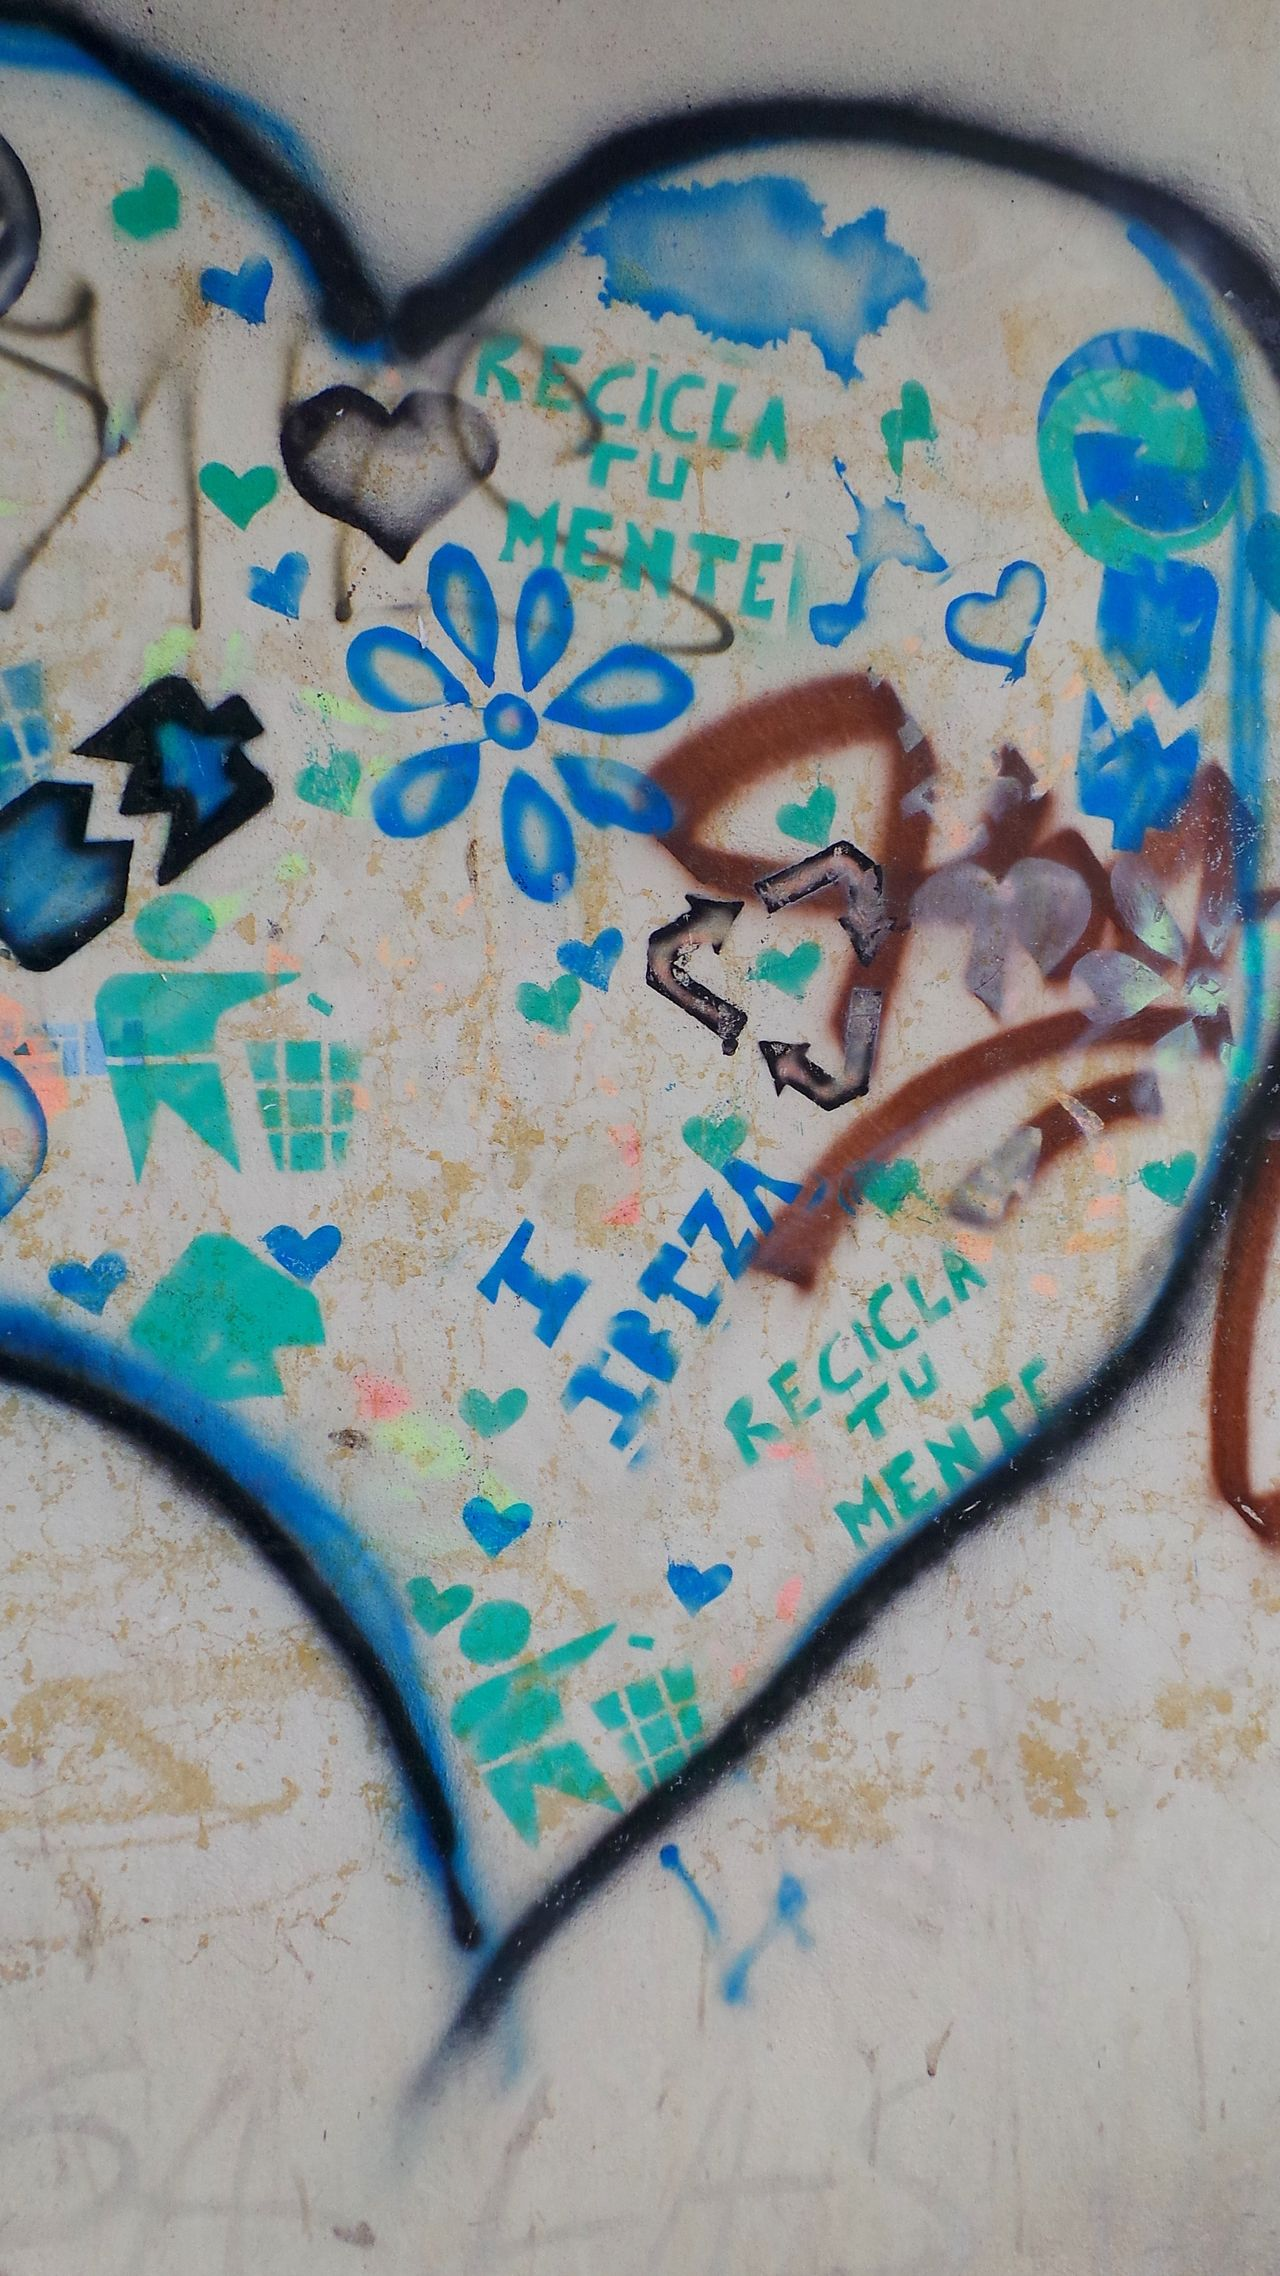 Recycle your mind! BCG Blue Check This Out Close-up Color Of Life Communication Creativity Day From My Point Of View Graffiti Hello World Home Is Where The Art Is Ibiza Multi Colored No People Paint Painting Pivotal Ideas Street Art Street Photography Streetphotography Urban Wall Wall - Building Feature Color Palette